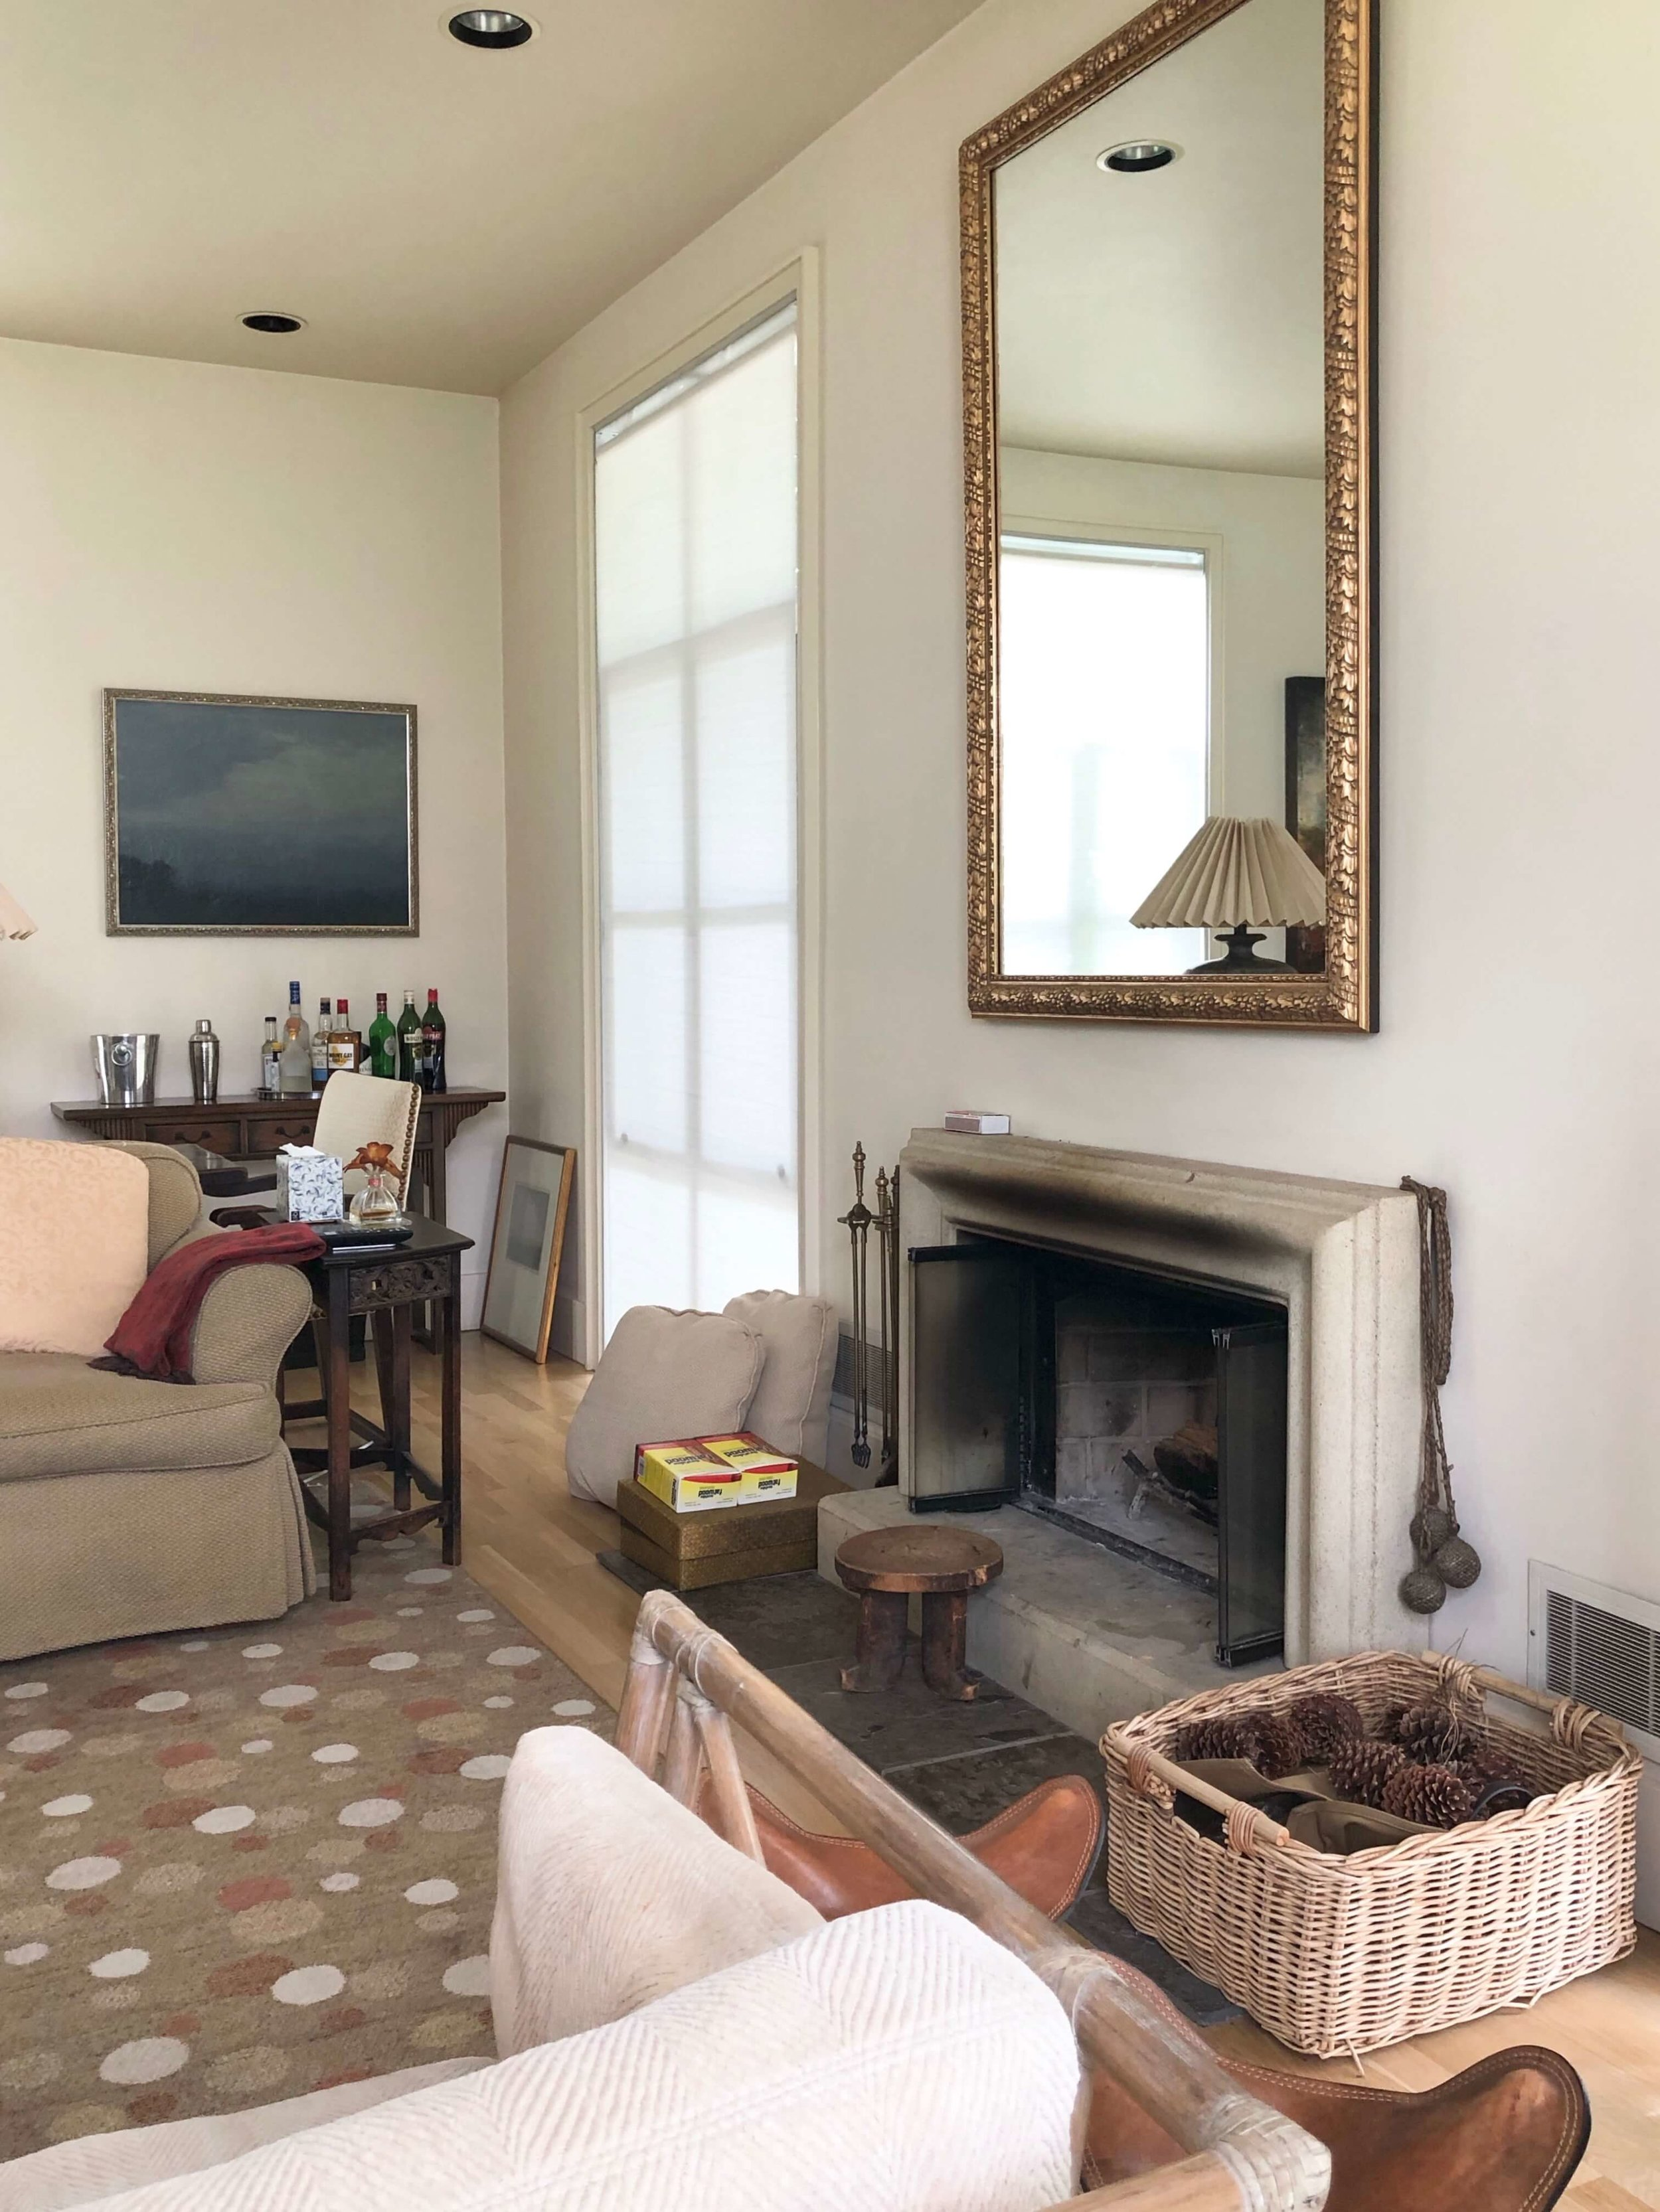 Antiques, books and art create a European ambience in this Sonoma Valley Airbnb vacation rental living room. #airbnb #winecountry